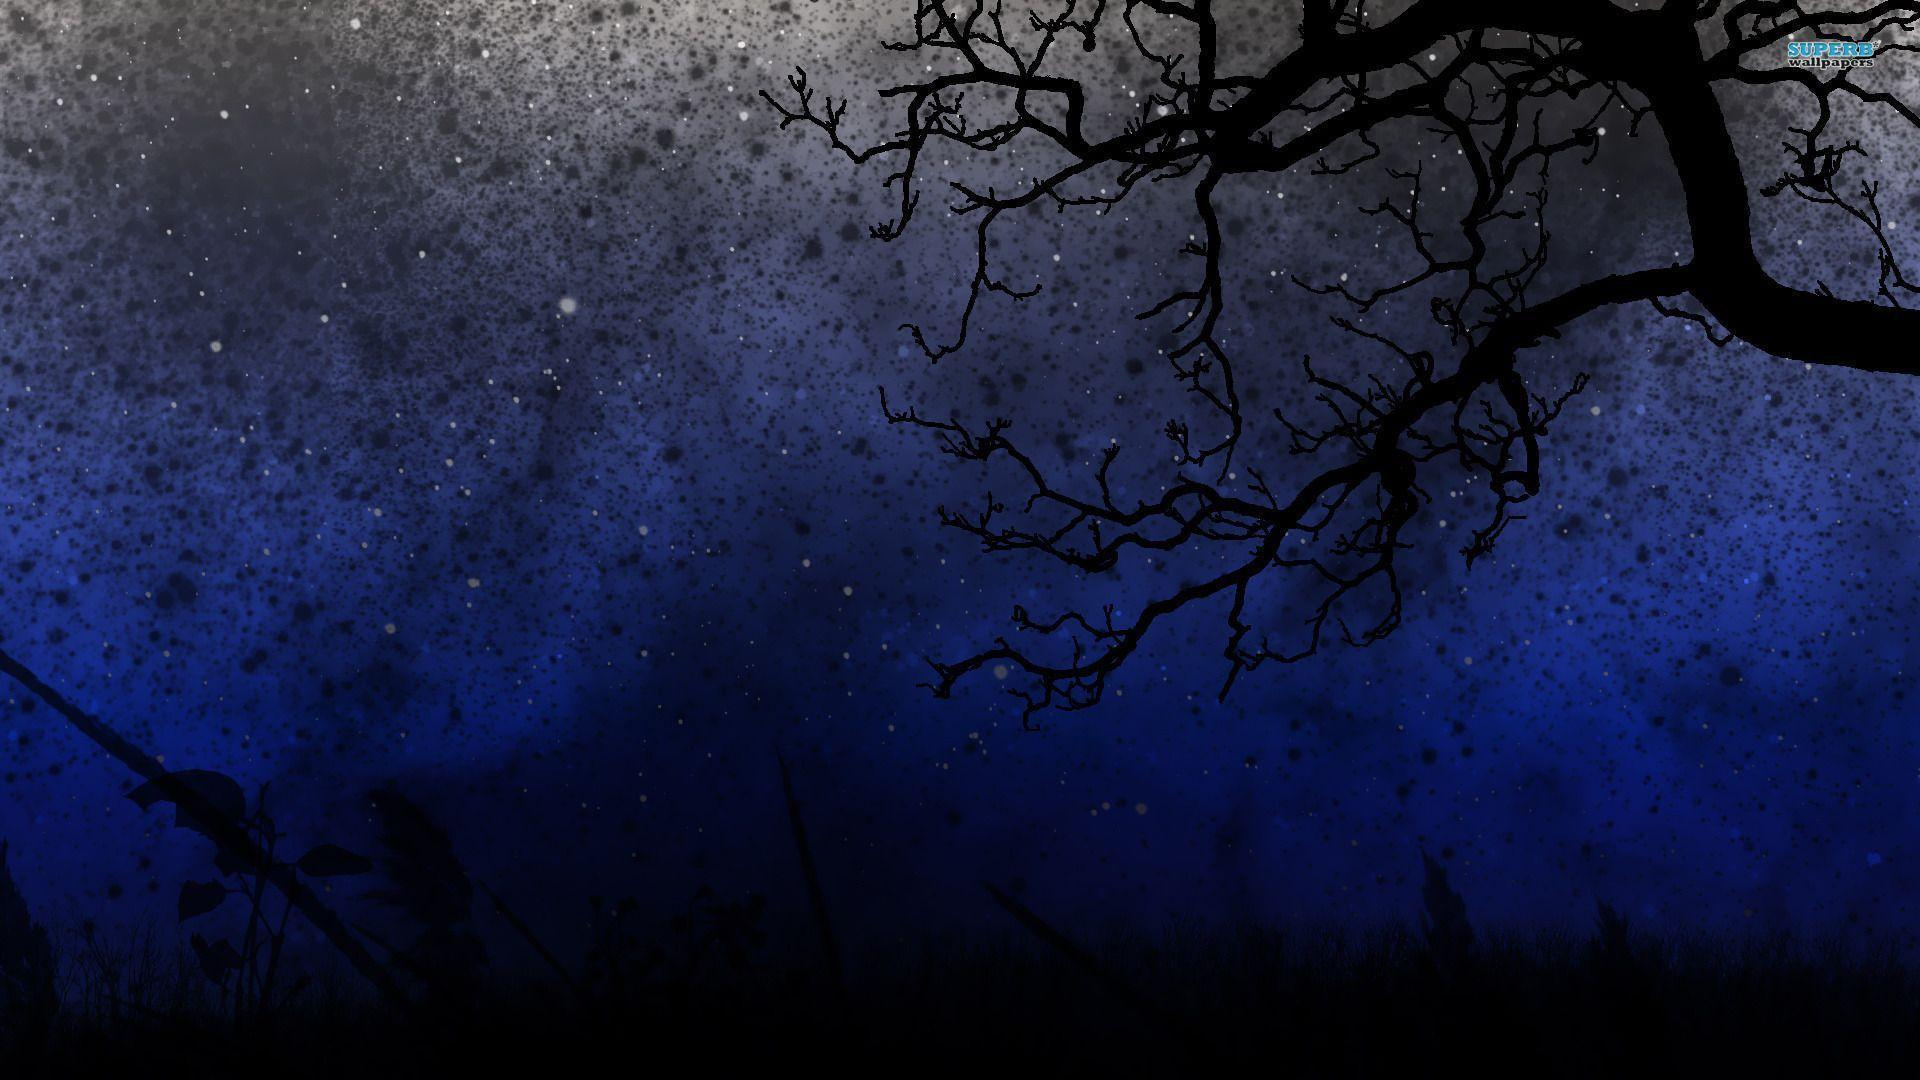 Starry Night Desktop Wallpapers - Wallpaper Cave